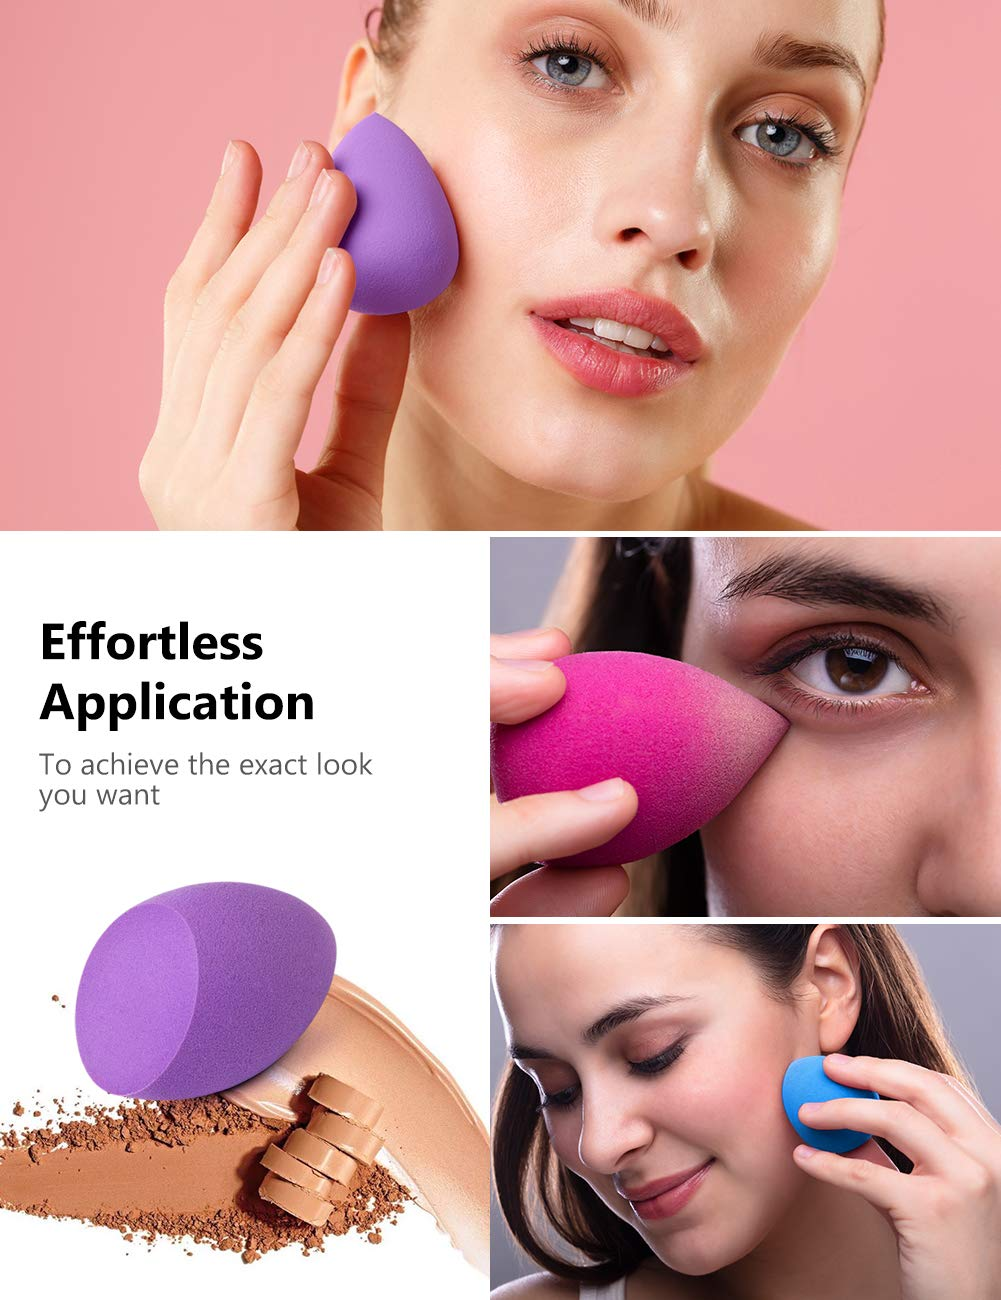 Tips for Using the Makeup Sponges